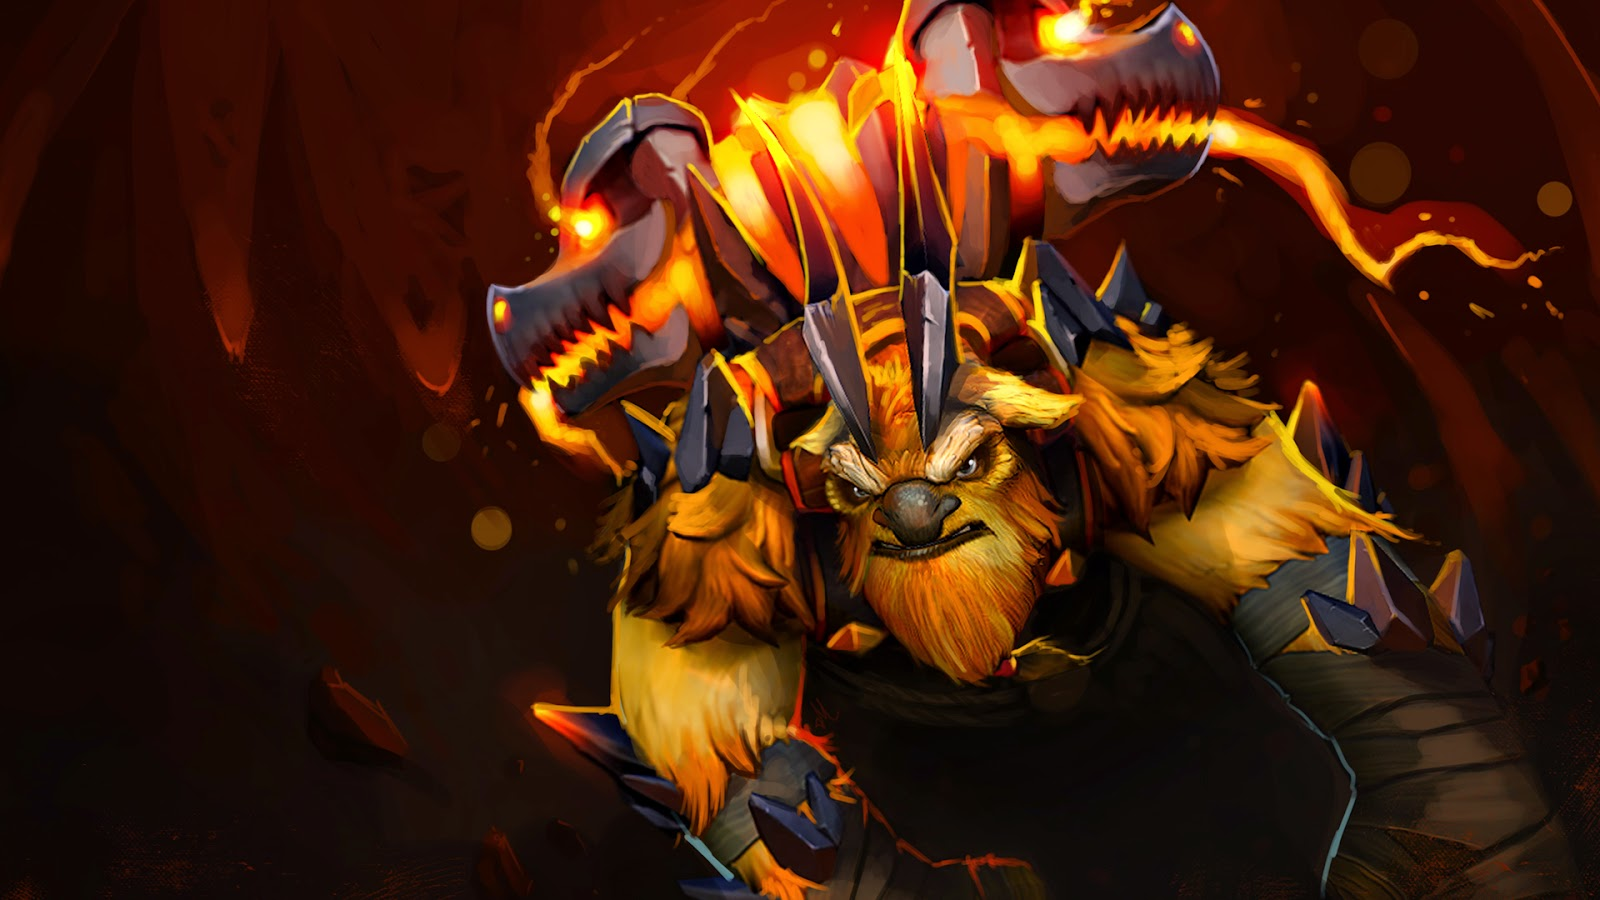 DotA  Chibi Wallpaper full HD for Desktop 1600x900